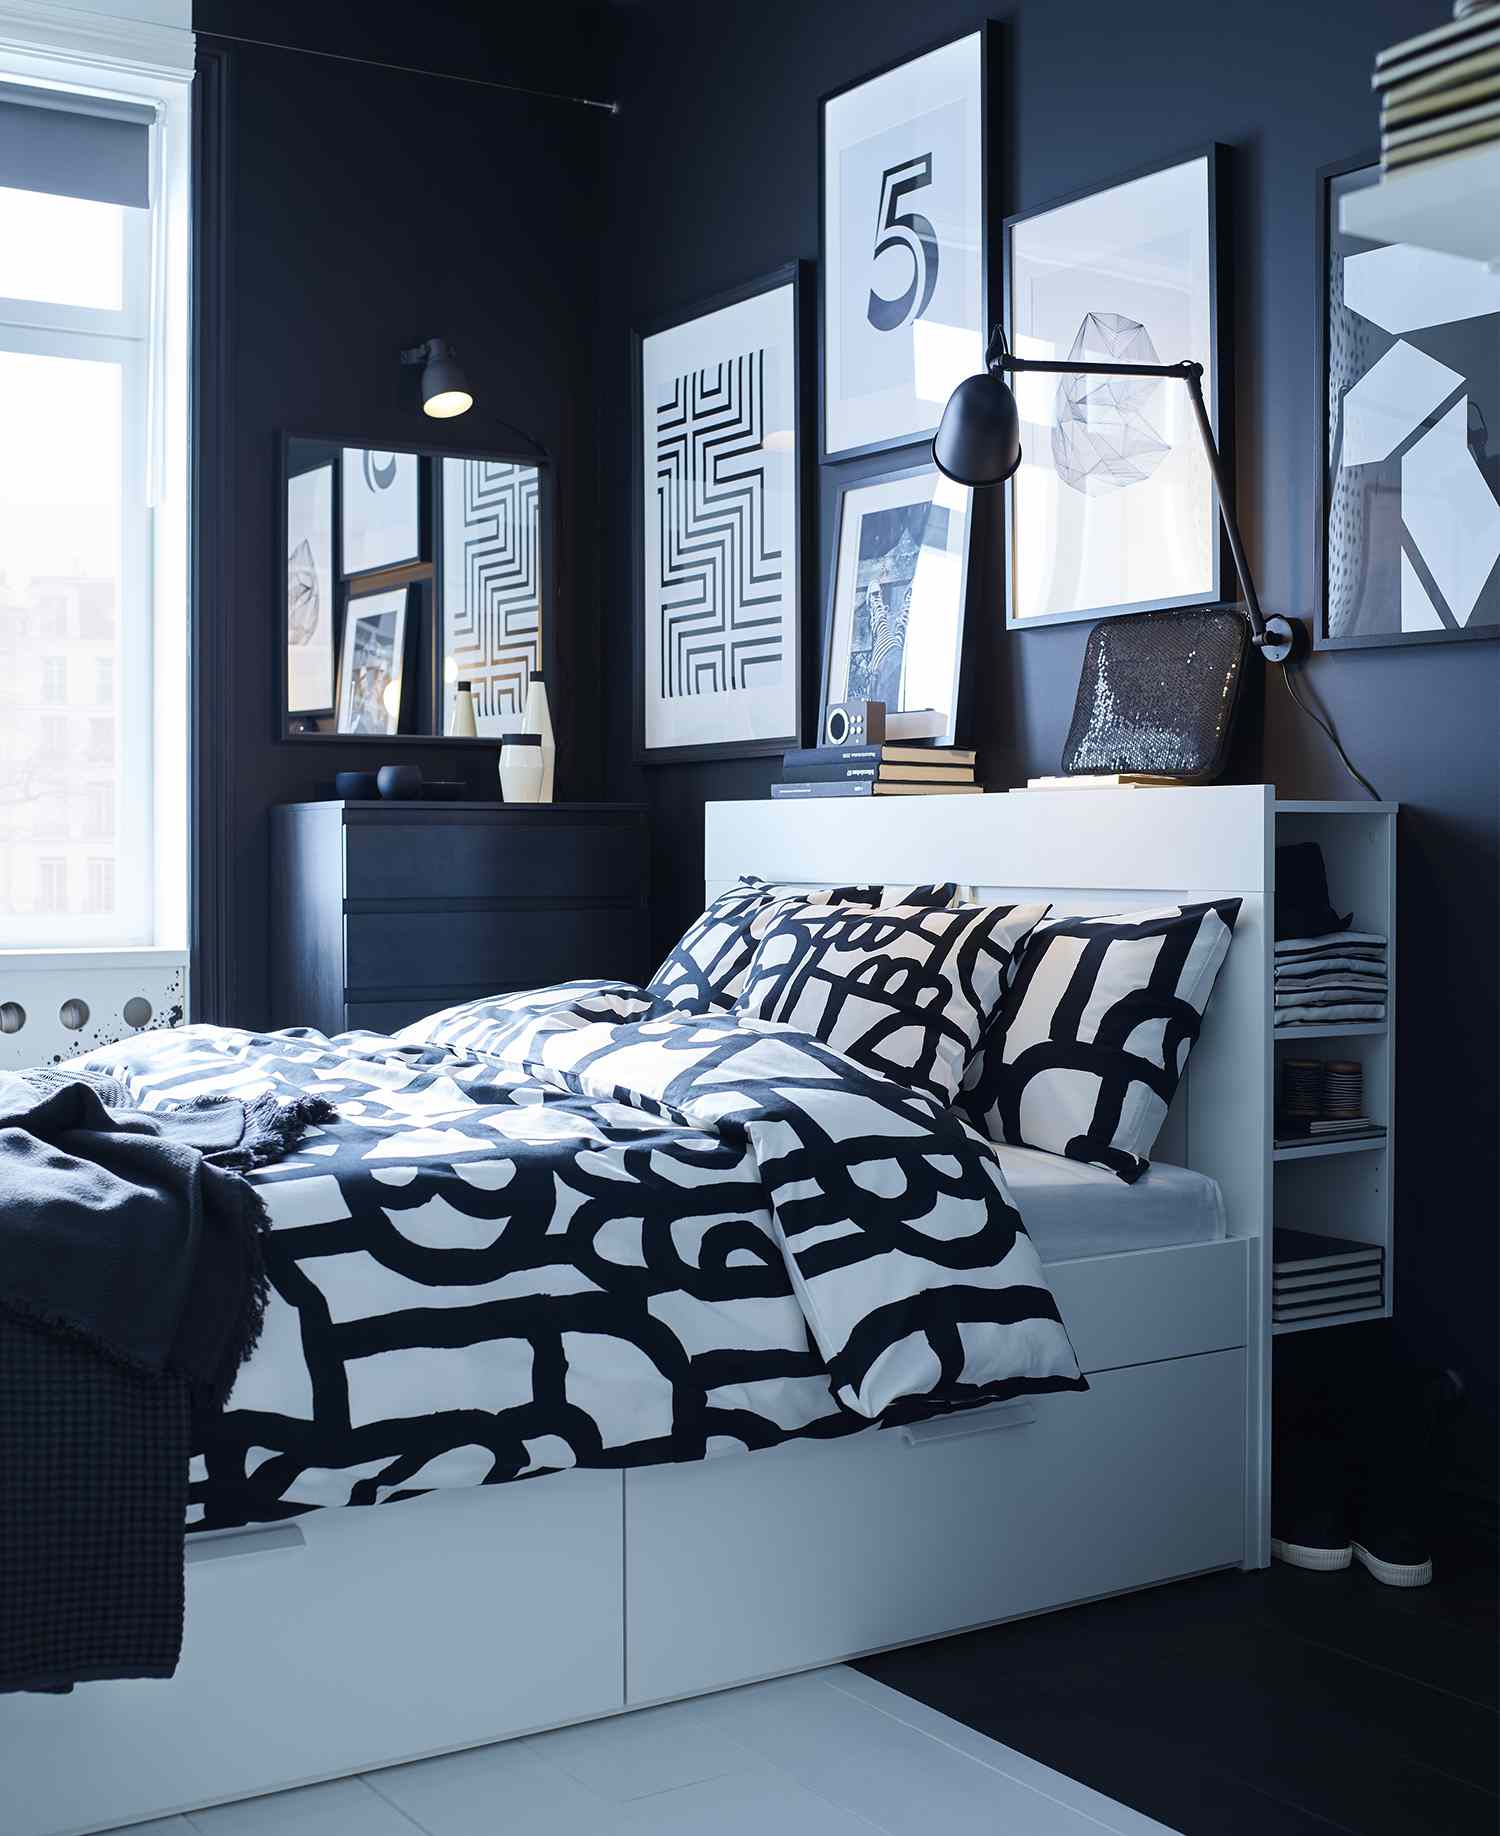 Bedroom with dark walls, a white bed, and black-and-white bedding.